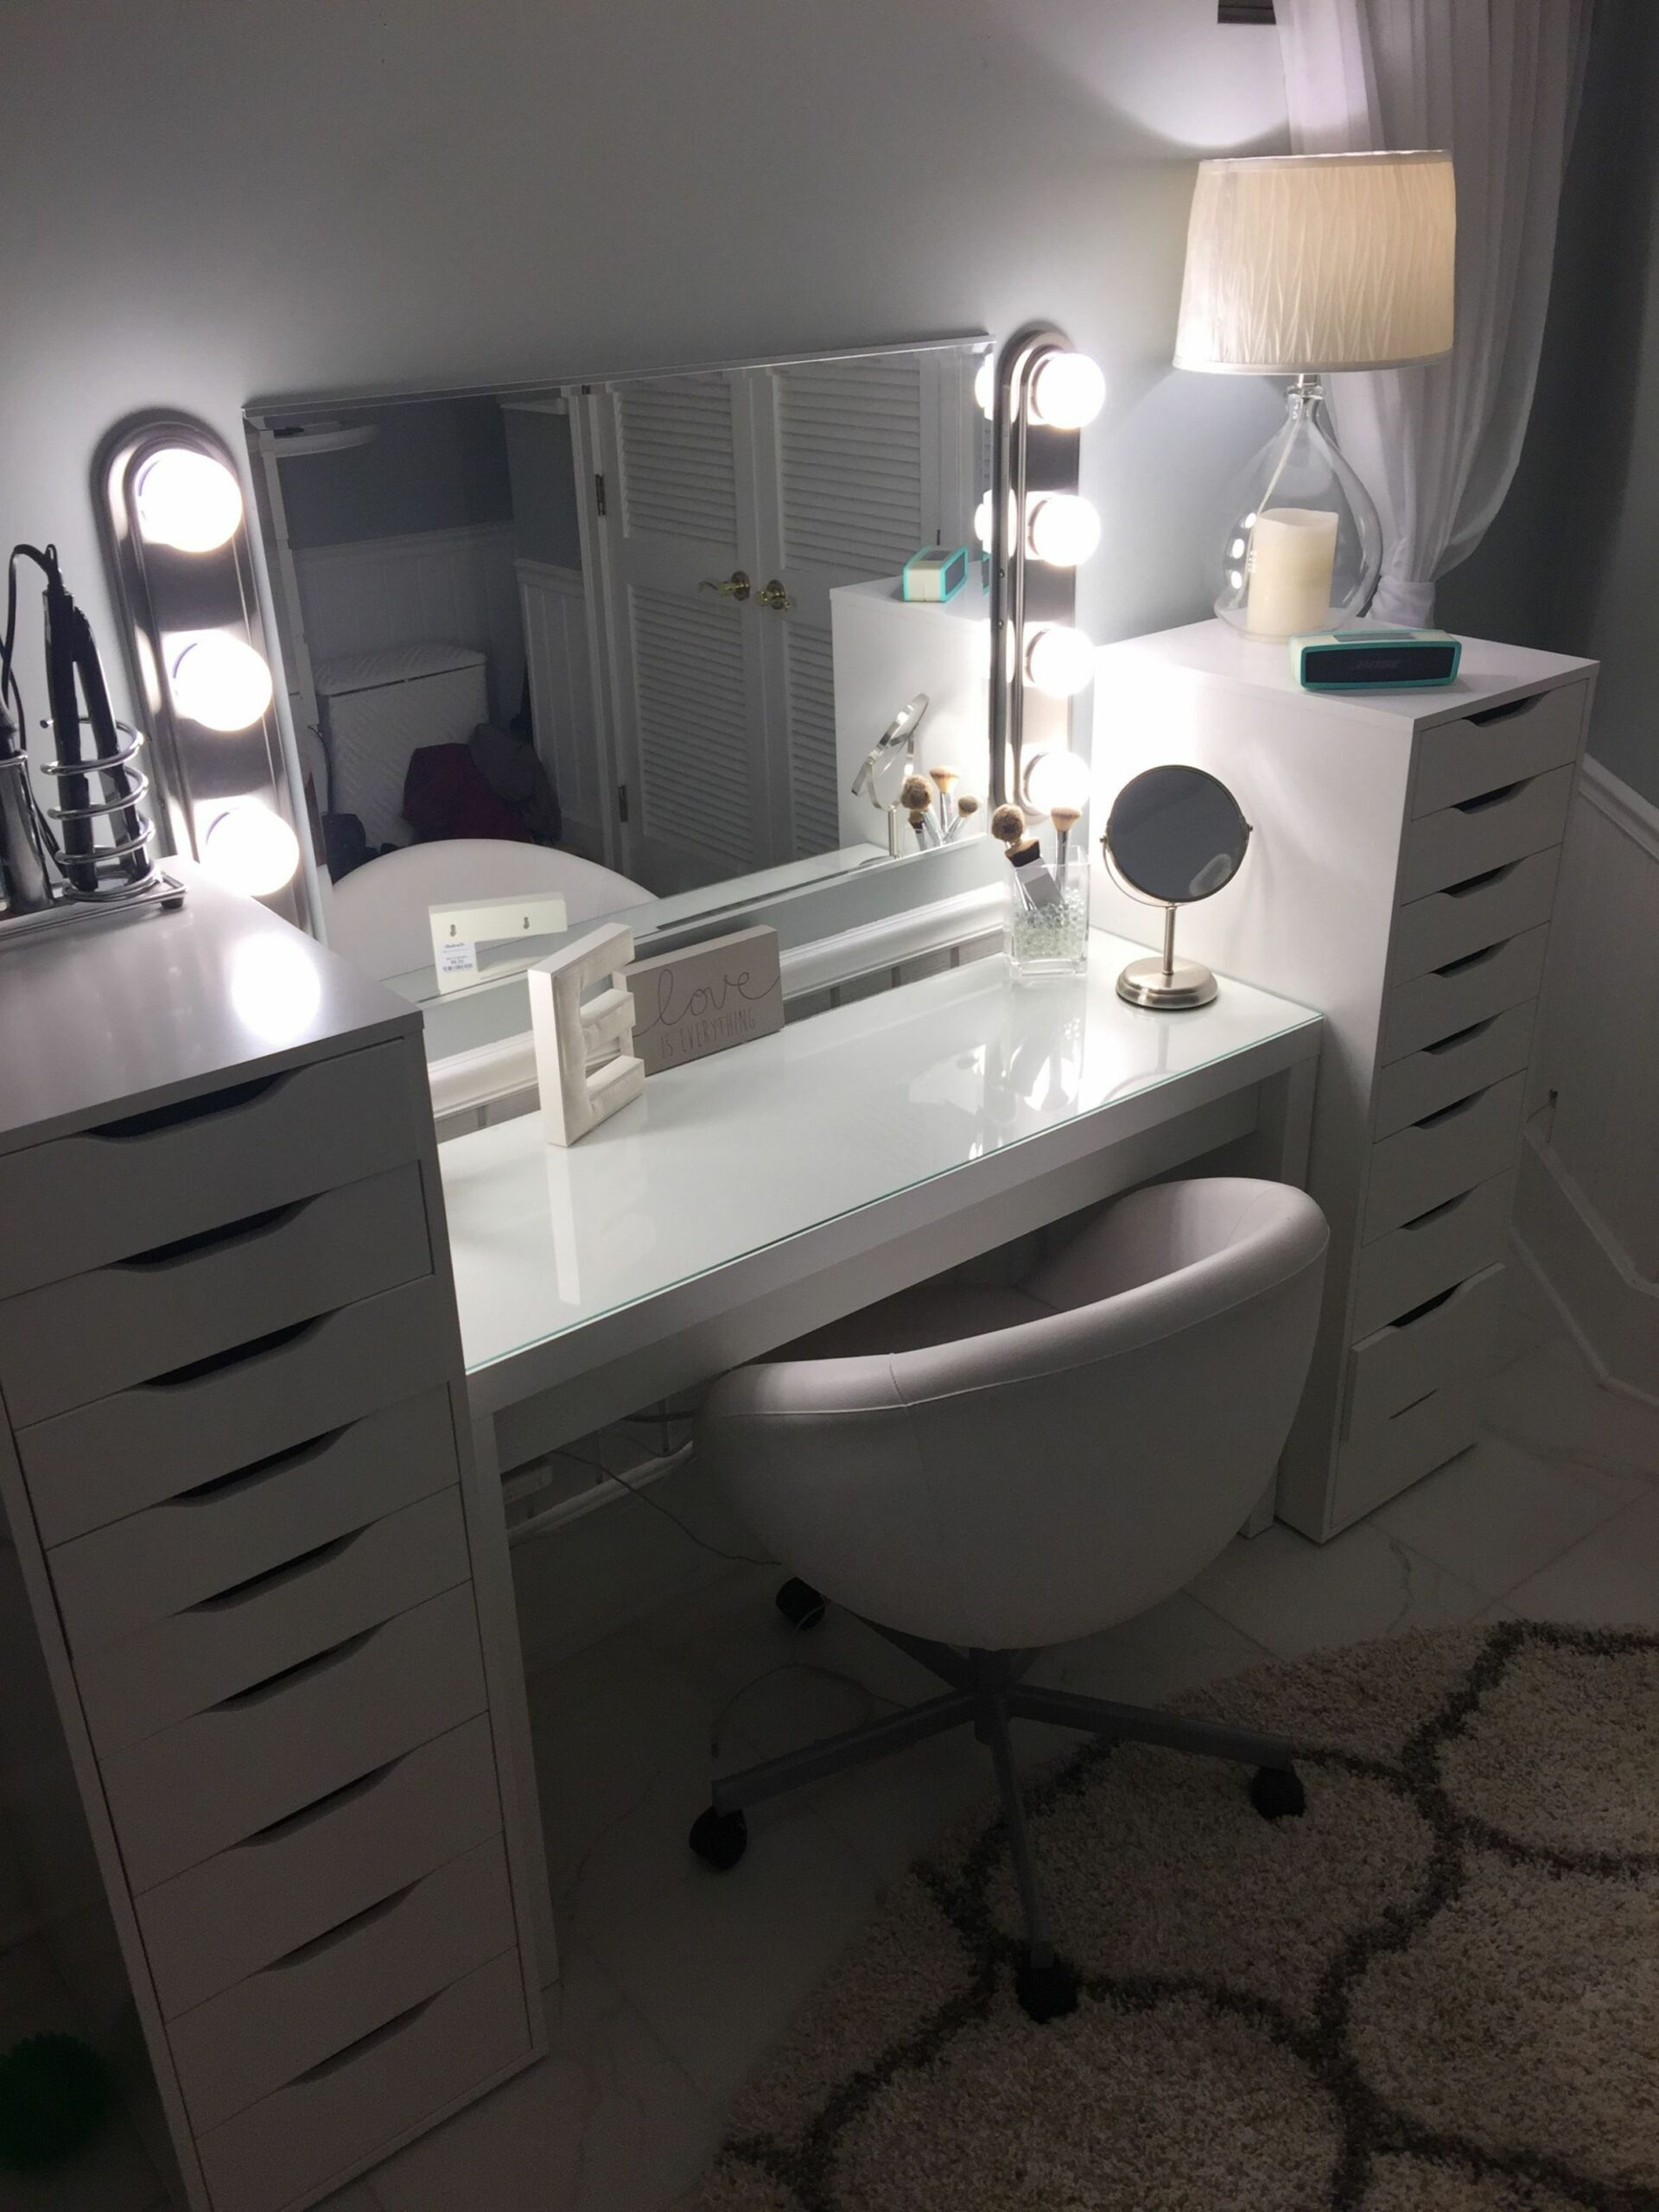 Ikea #makeup #lighted-makeup #DIY #home-depot | Vanity makeup ..